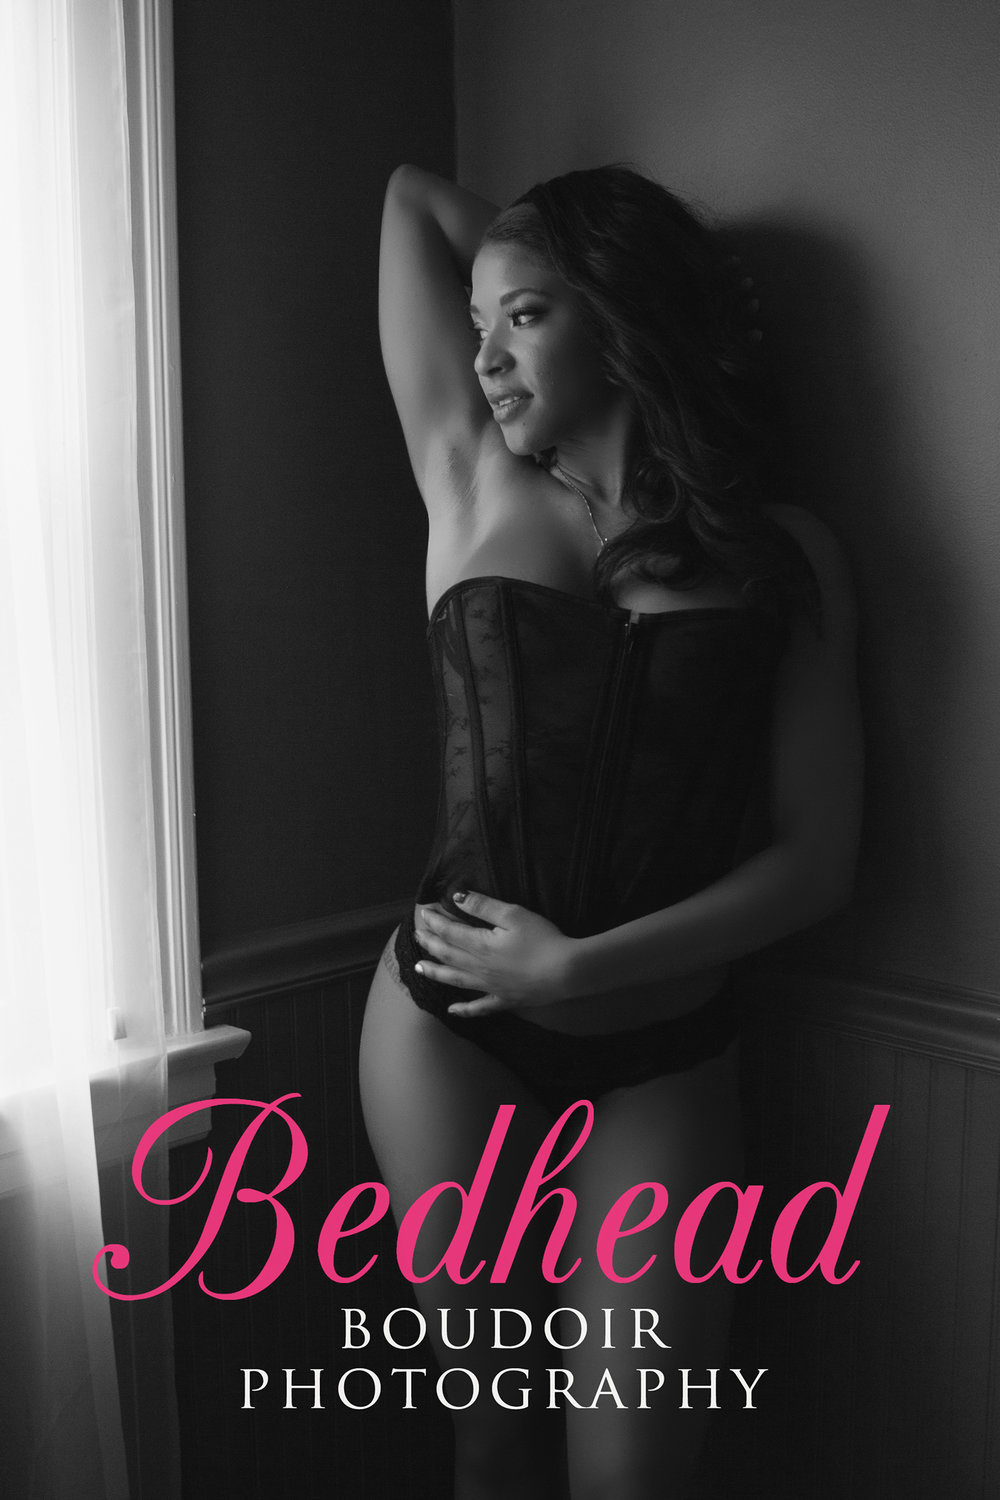 Boudoir_Photography_Chicago_Bedhead_53.jpg